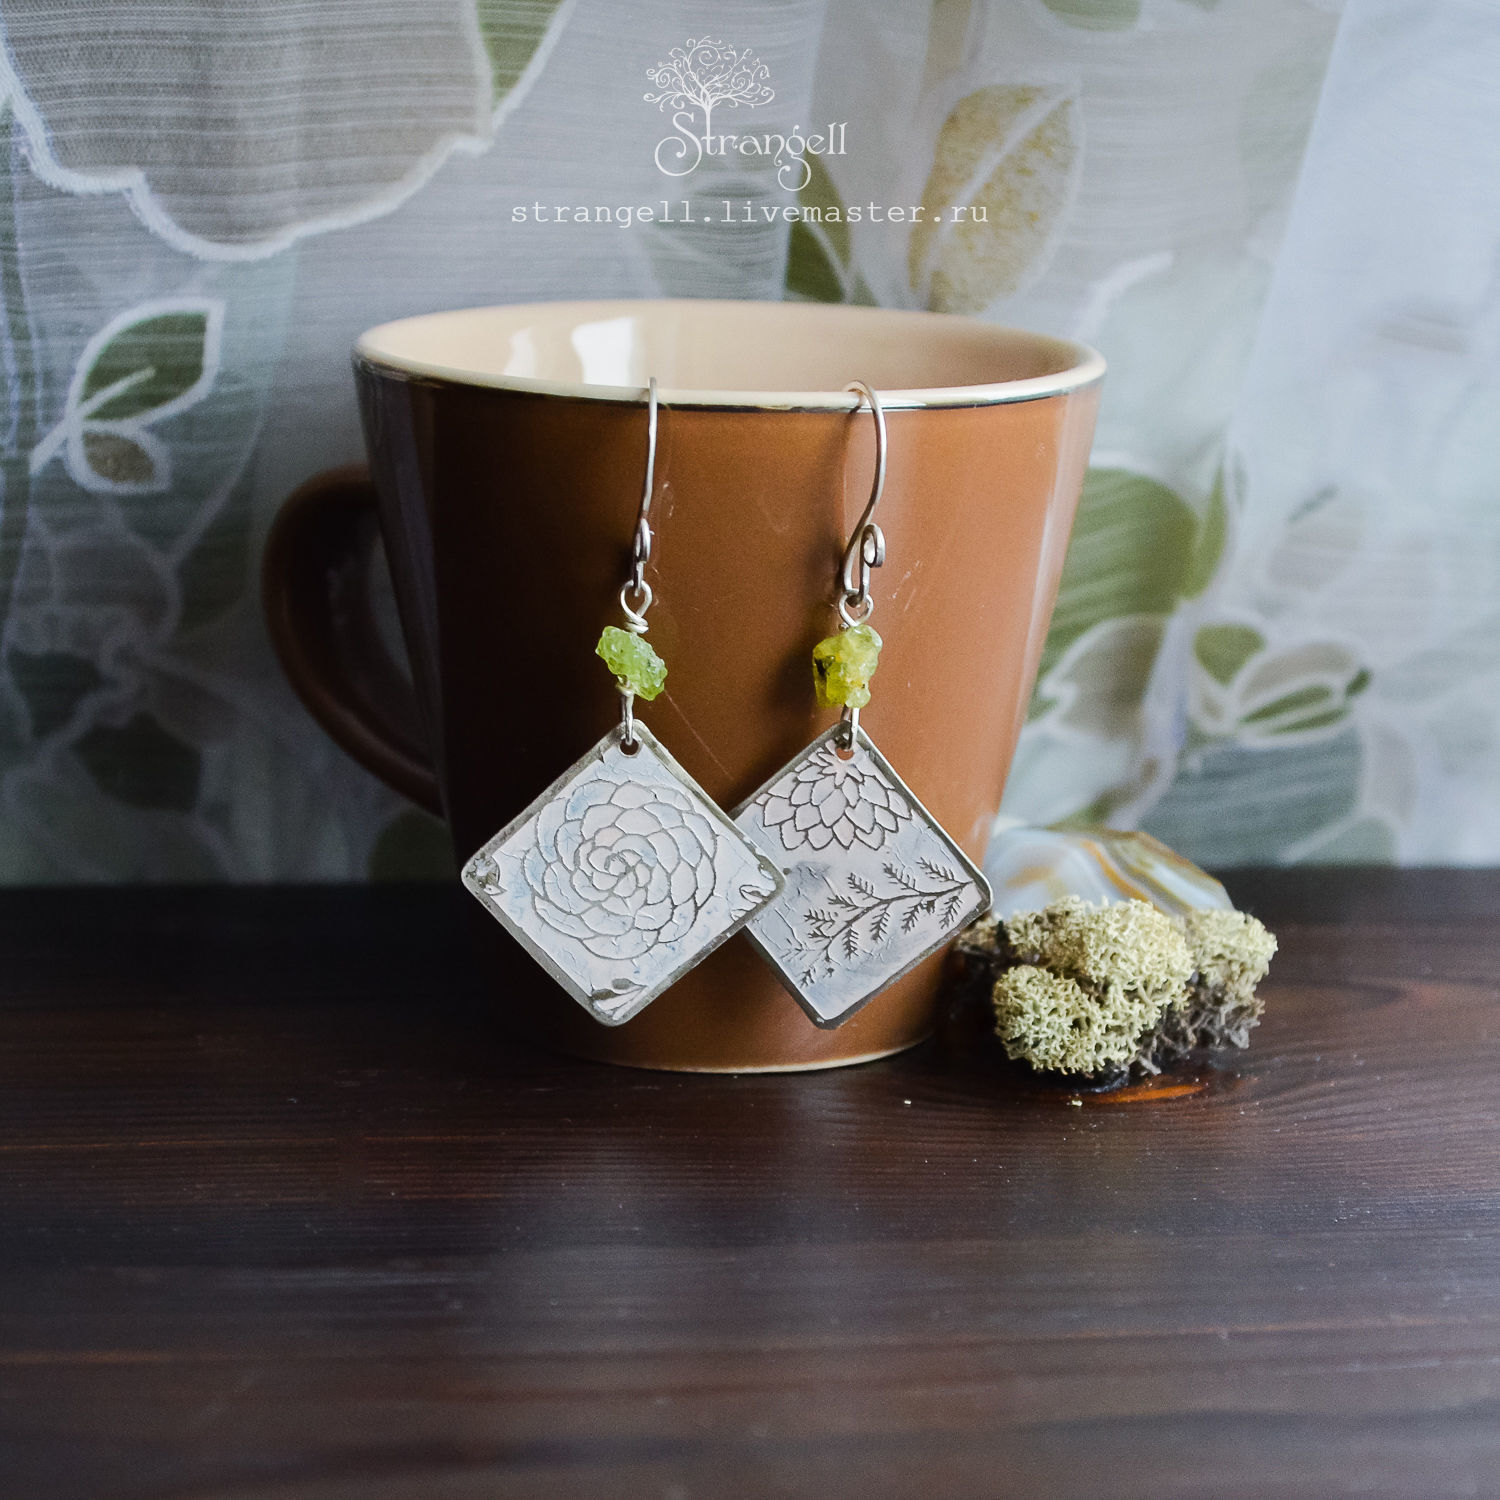 Boho earrings with chrysolite Silver earrings with nature ornament white, Earrings, Ulan-Ude,  Фото №1